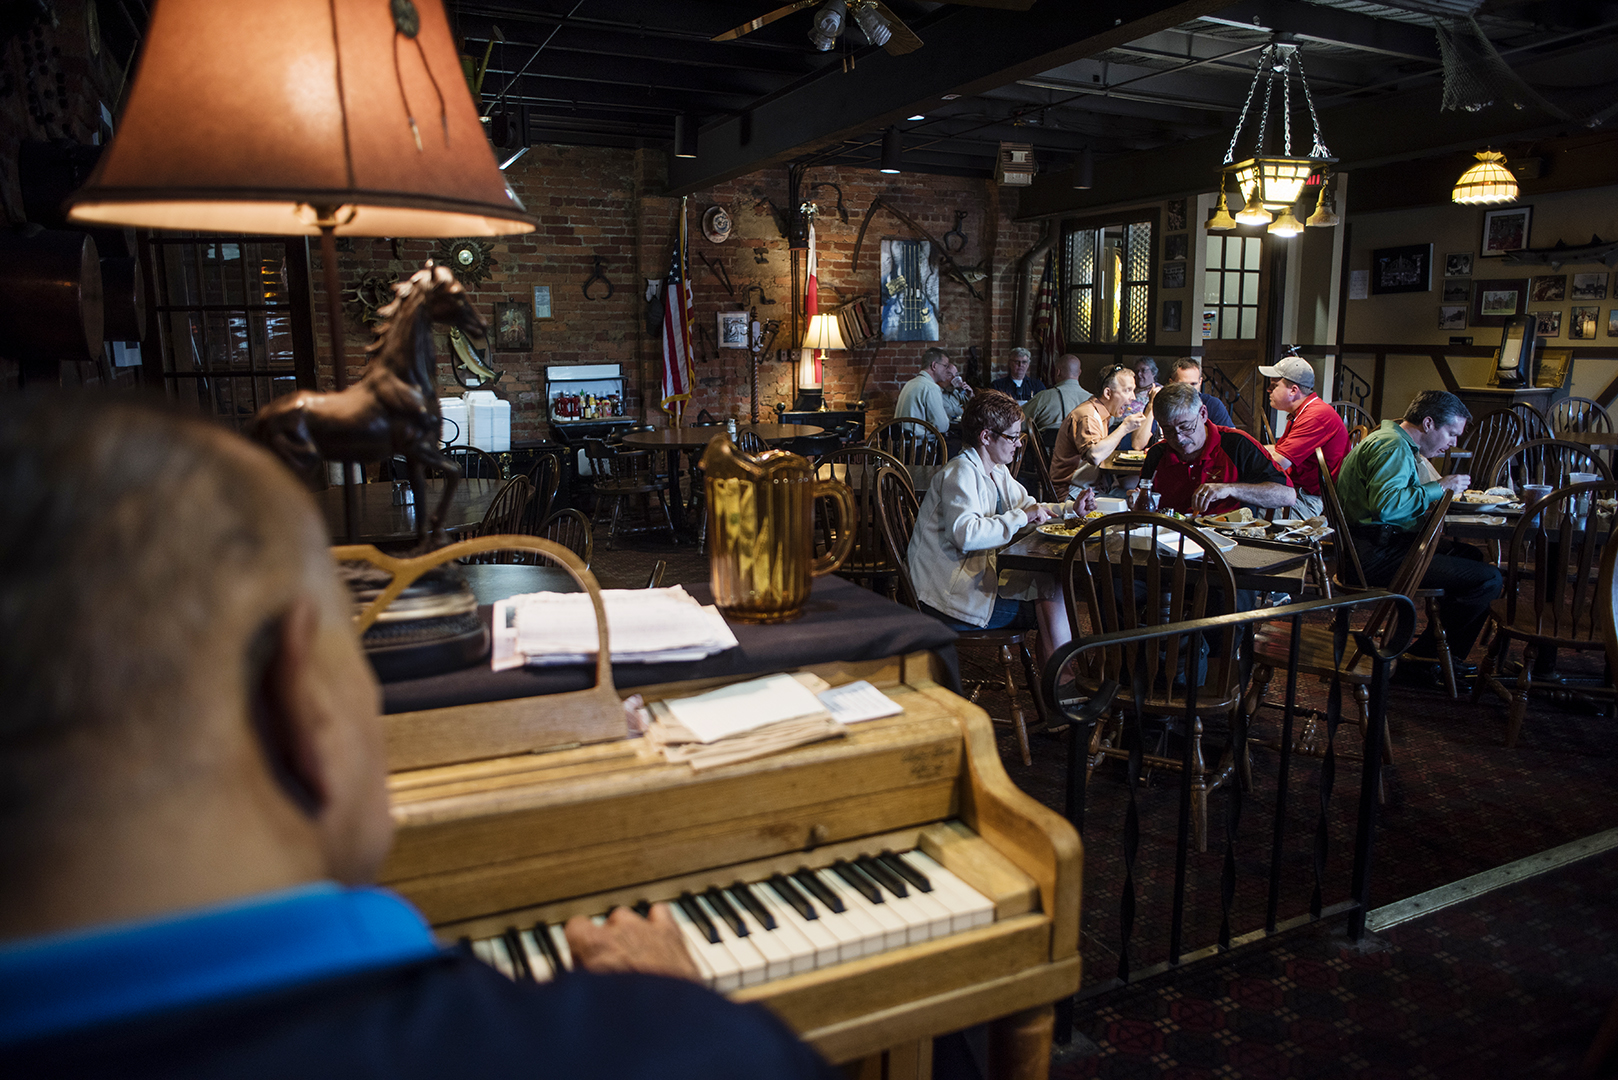 Seventy-one-year-old pianist Tom Ballog plays to lunch guests at Sokolowskis University Inn in Cleveland's Tremont neighborhood on July 1, 2016. Ballog has played all over the country thoughout his life and has 1500 songs commited to memory. (Dustin Franz/The Washington Post)